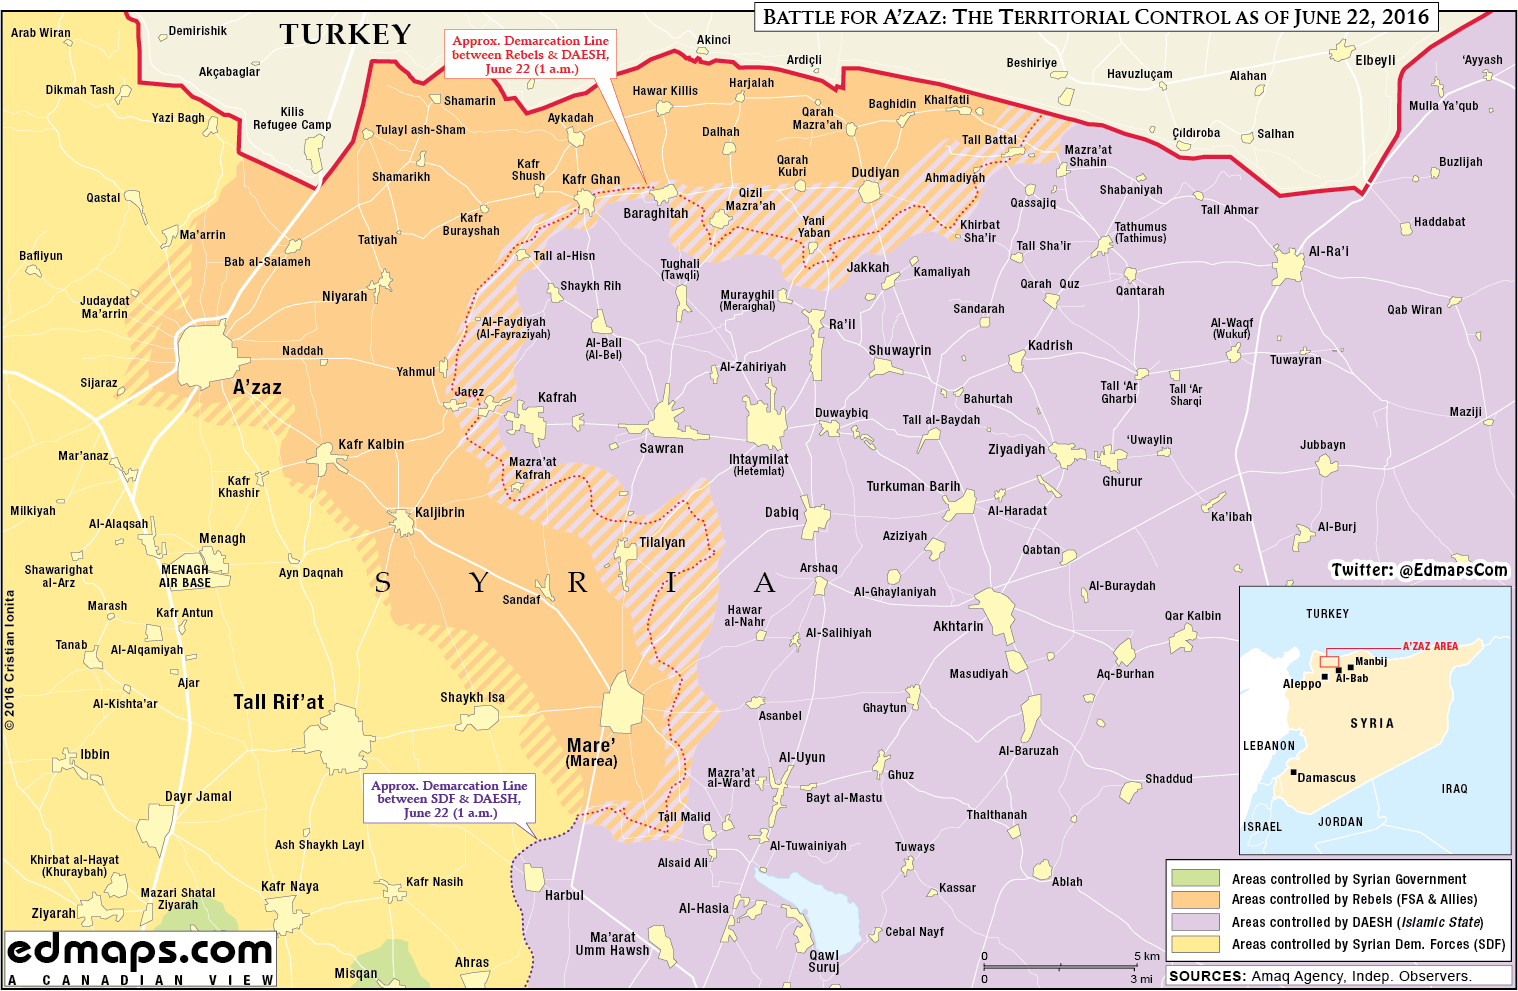 Military Situation in Northern Aleppo, Syria on June 22